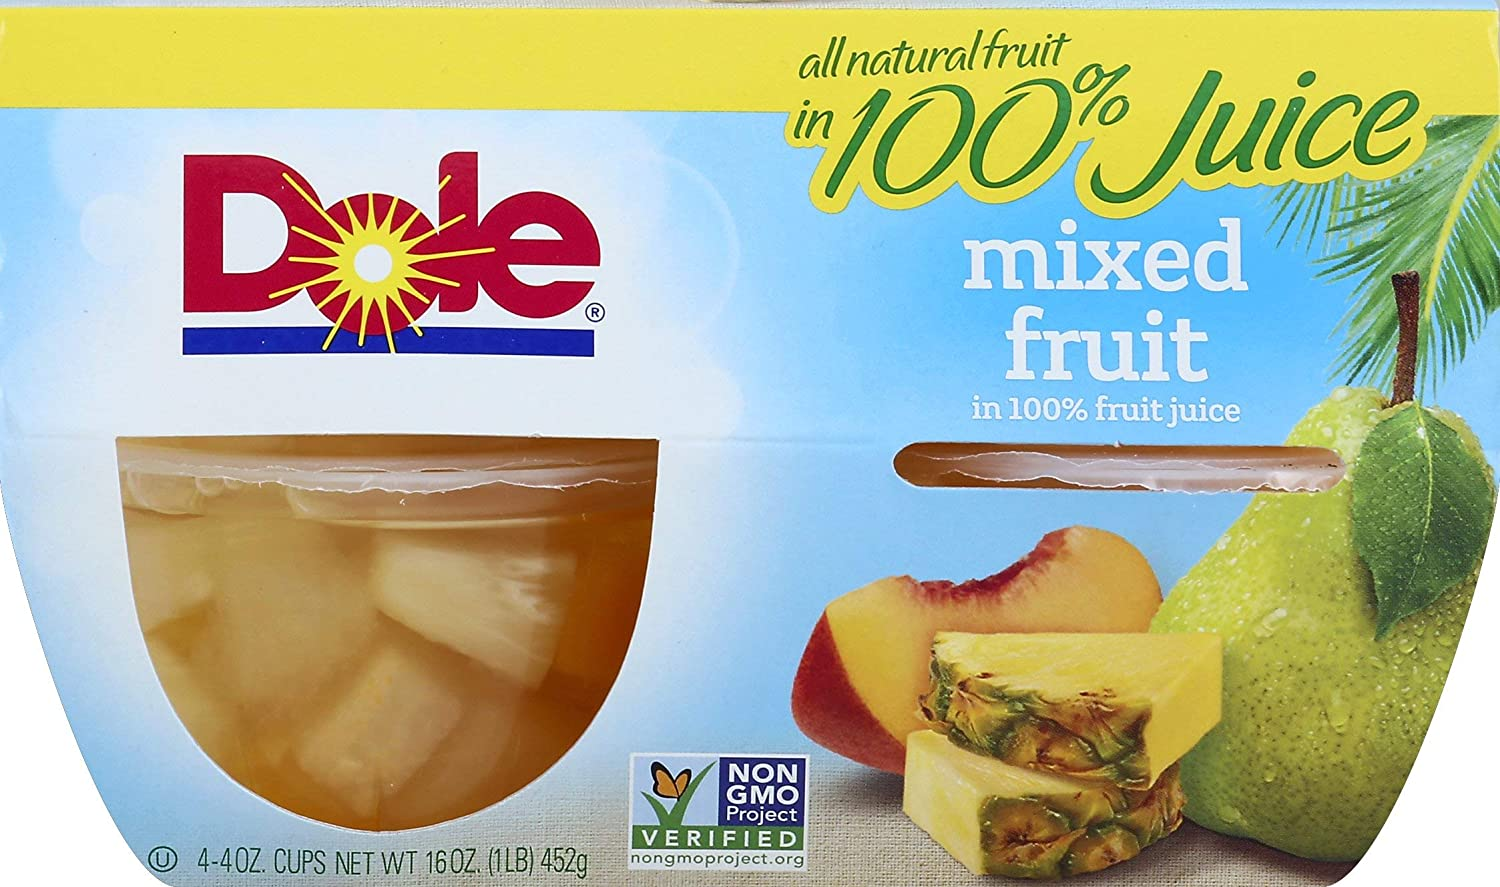 Dole Fruit Bowls, Mixed Fruit in 100% Fruit Juice, 4oz, 4 cups